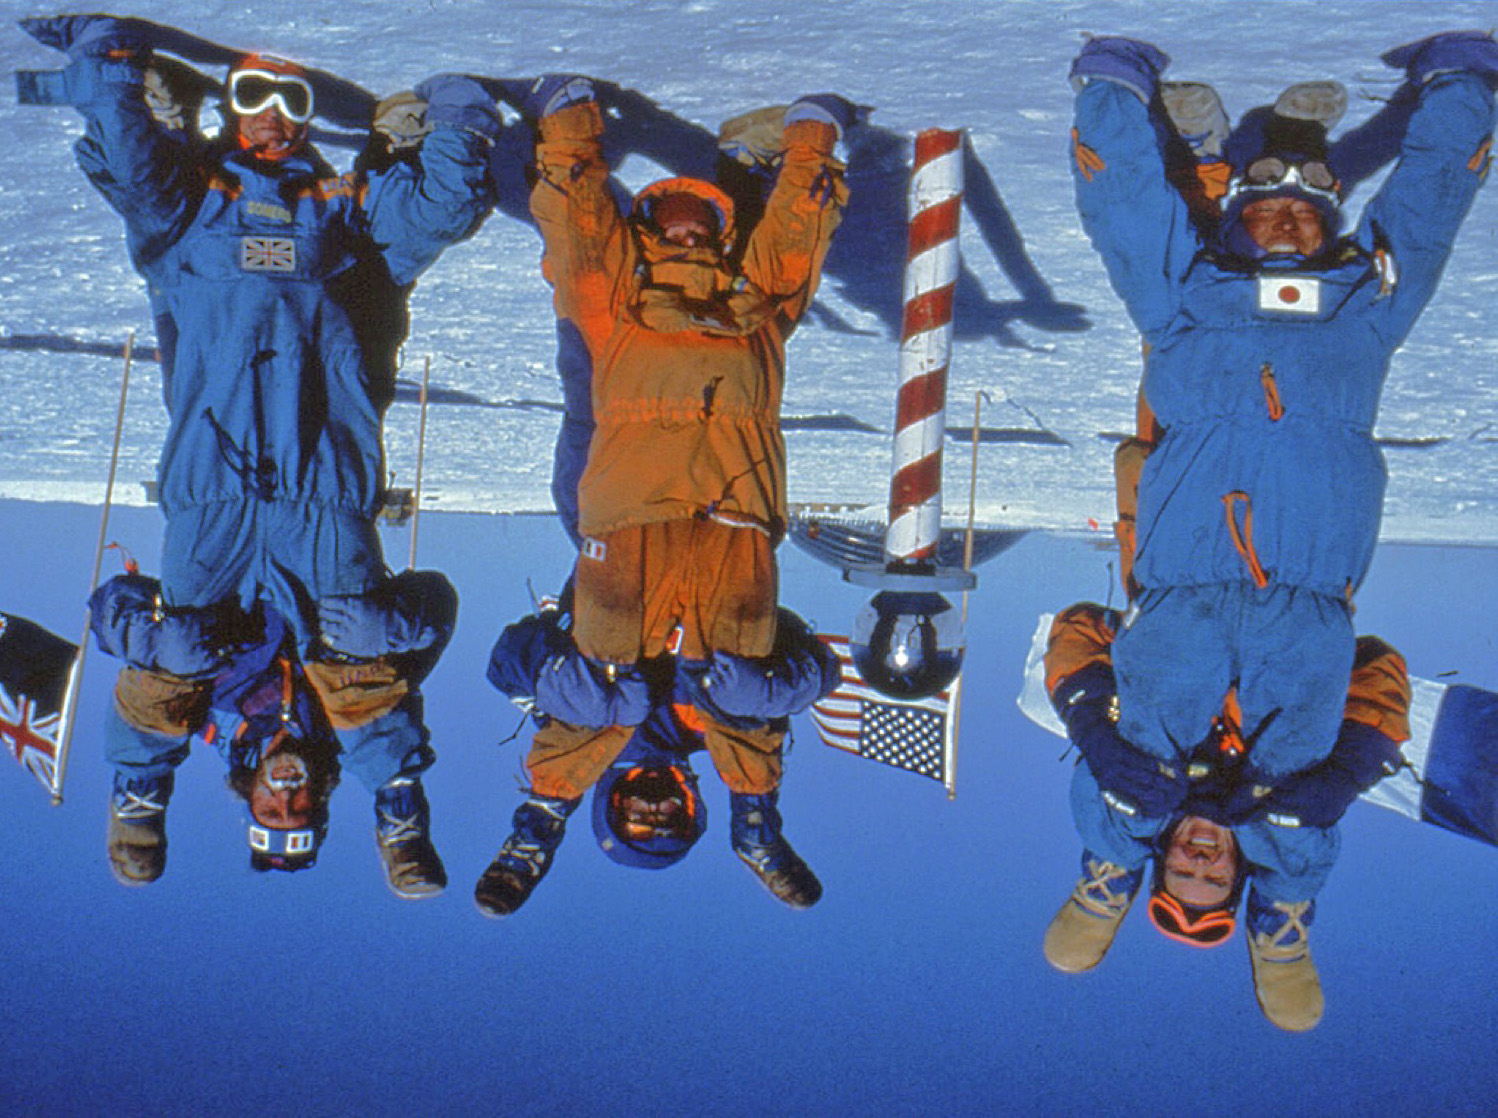 Trans-Antarctica Expedition team (Victor Boyarsky, Geoff Somers, Qin Dahe, Jean-Louis Etienne, Will Steger, Keizo Funatsu).Happy to have enough fuel to keep the expedition going, theyplaywith the cameraat the bottom of the world. December 11, 1989. Photo ©Will Steger.